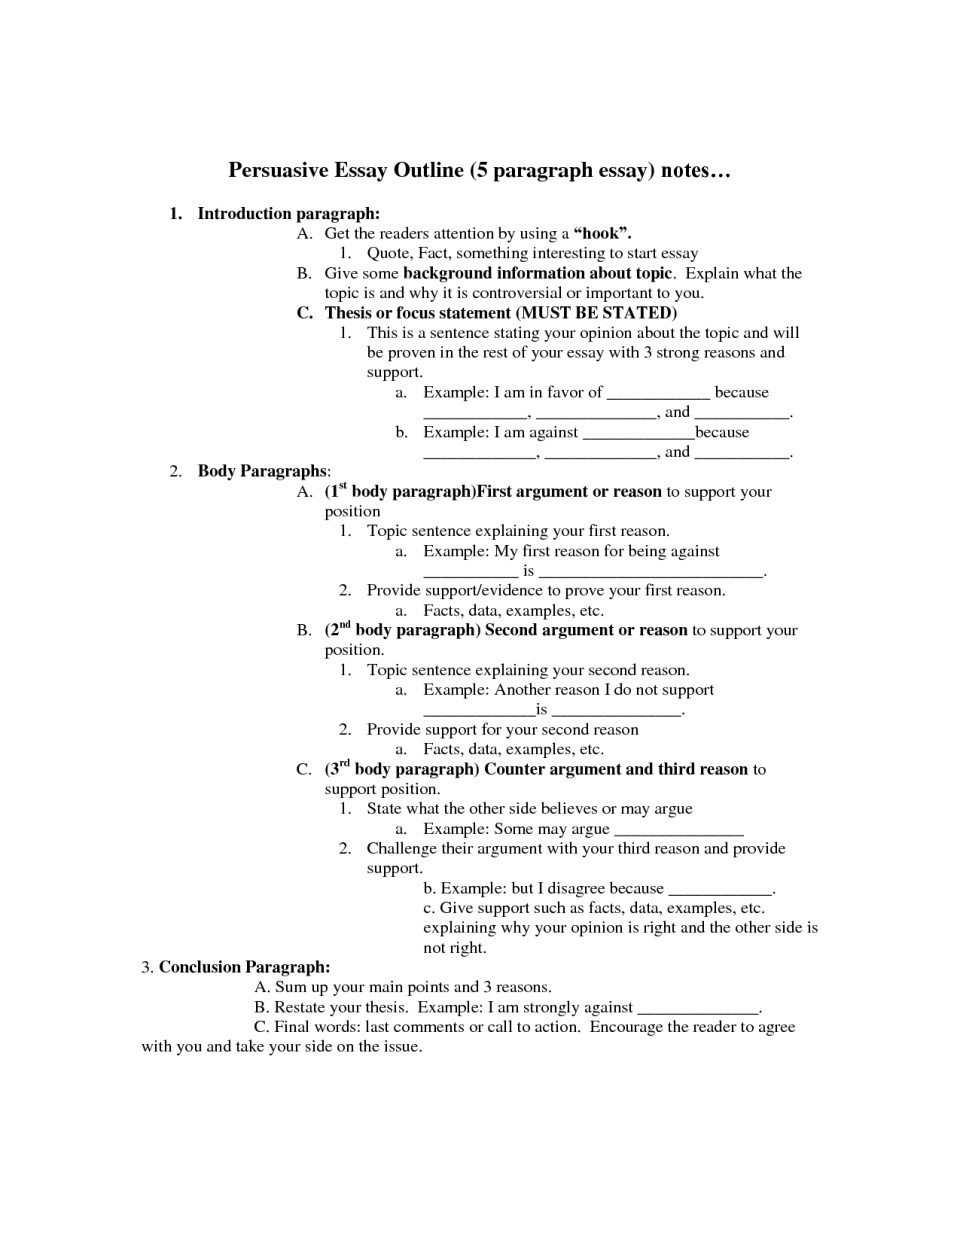 006 Persuasive Essay Outline Unbelievable Format Middle School Template High Pdf 960